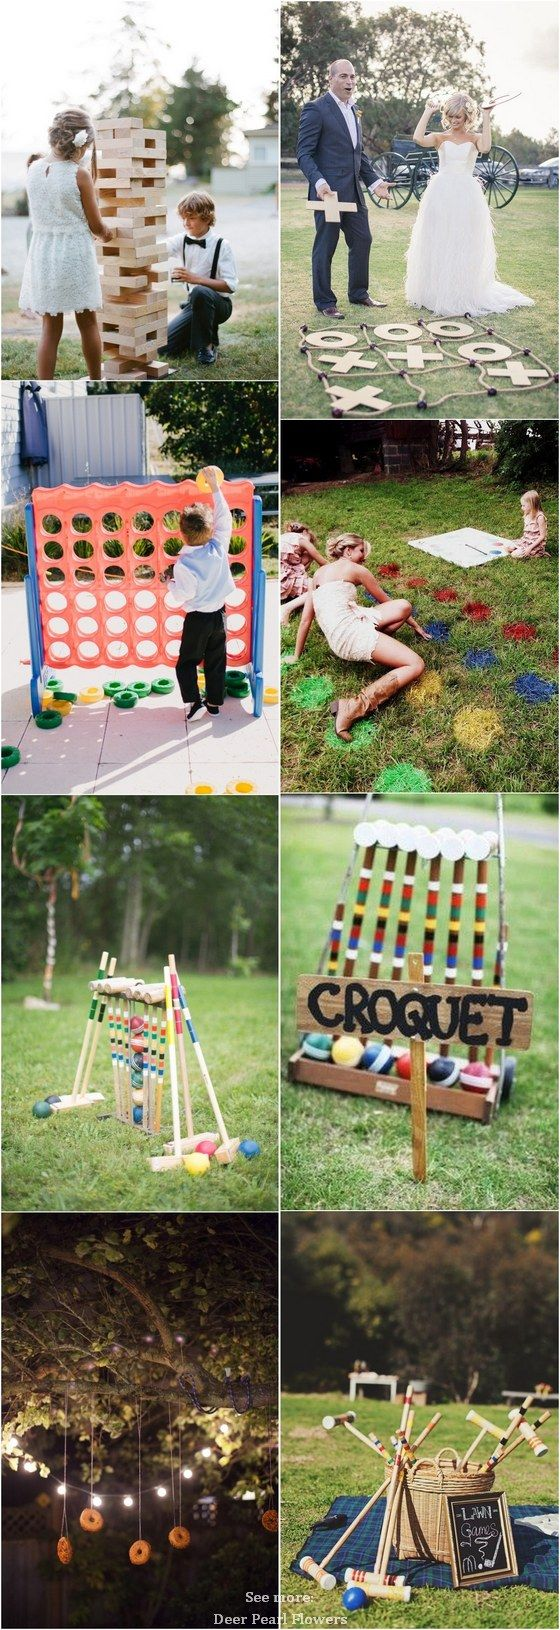 if you u0027re having an outdoor wedding lawn games are a fun way to